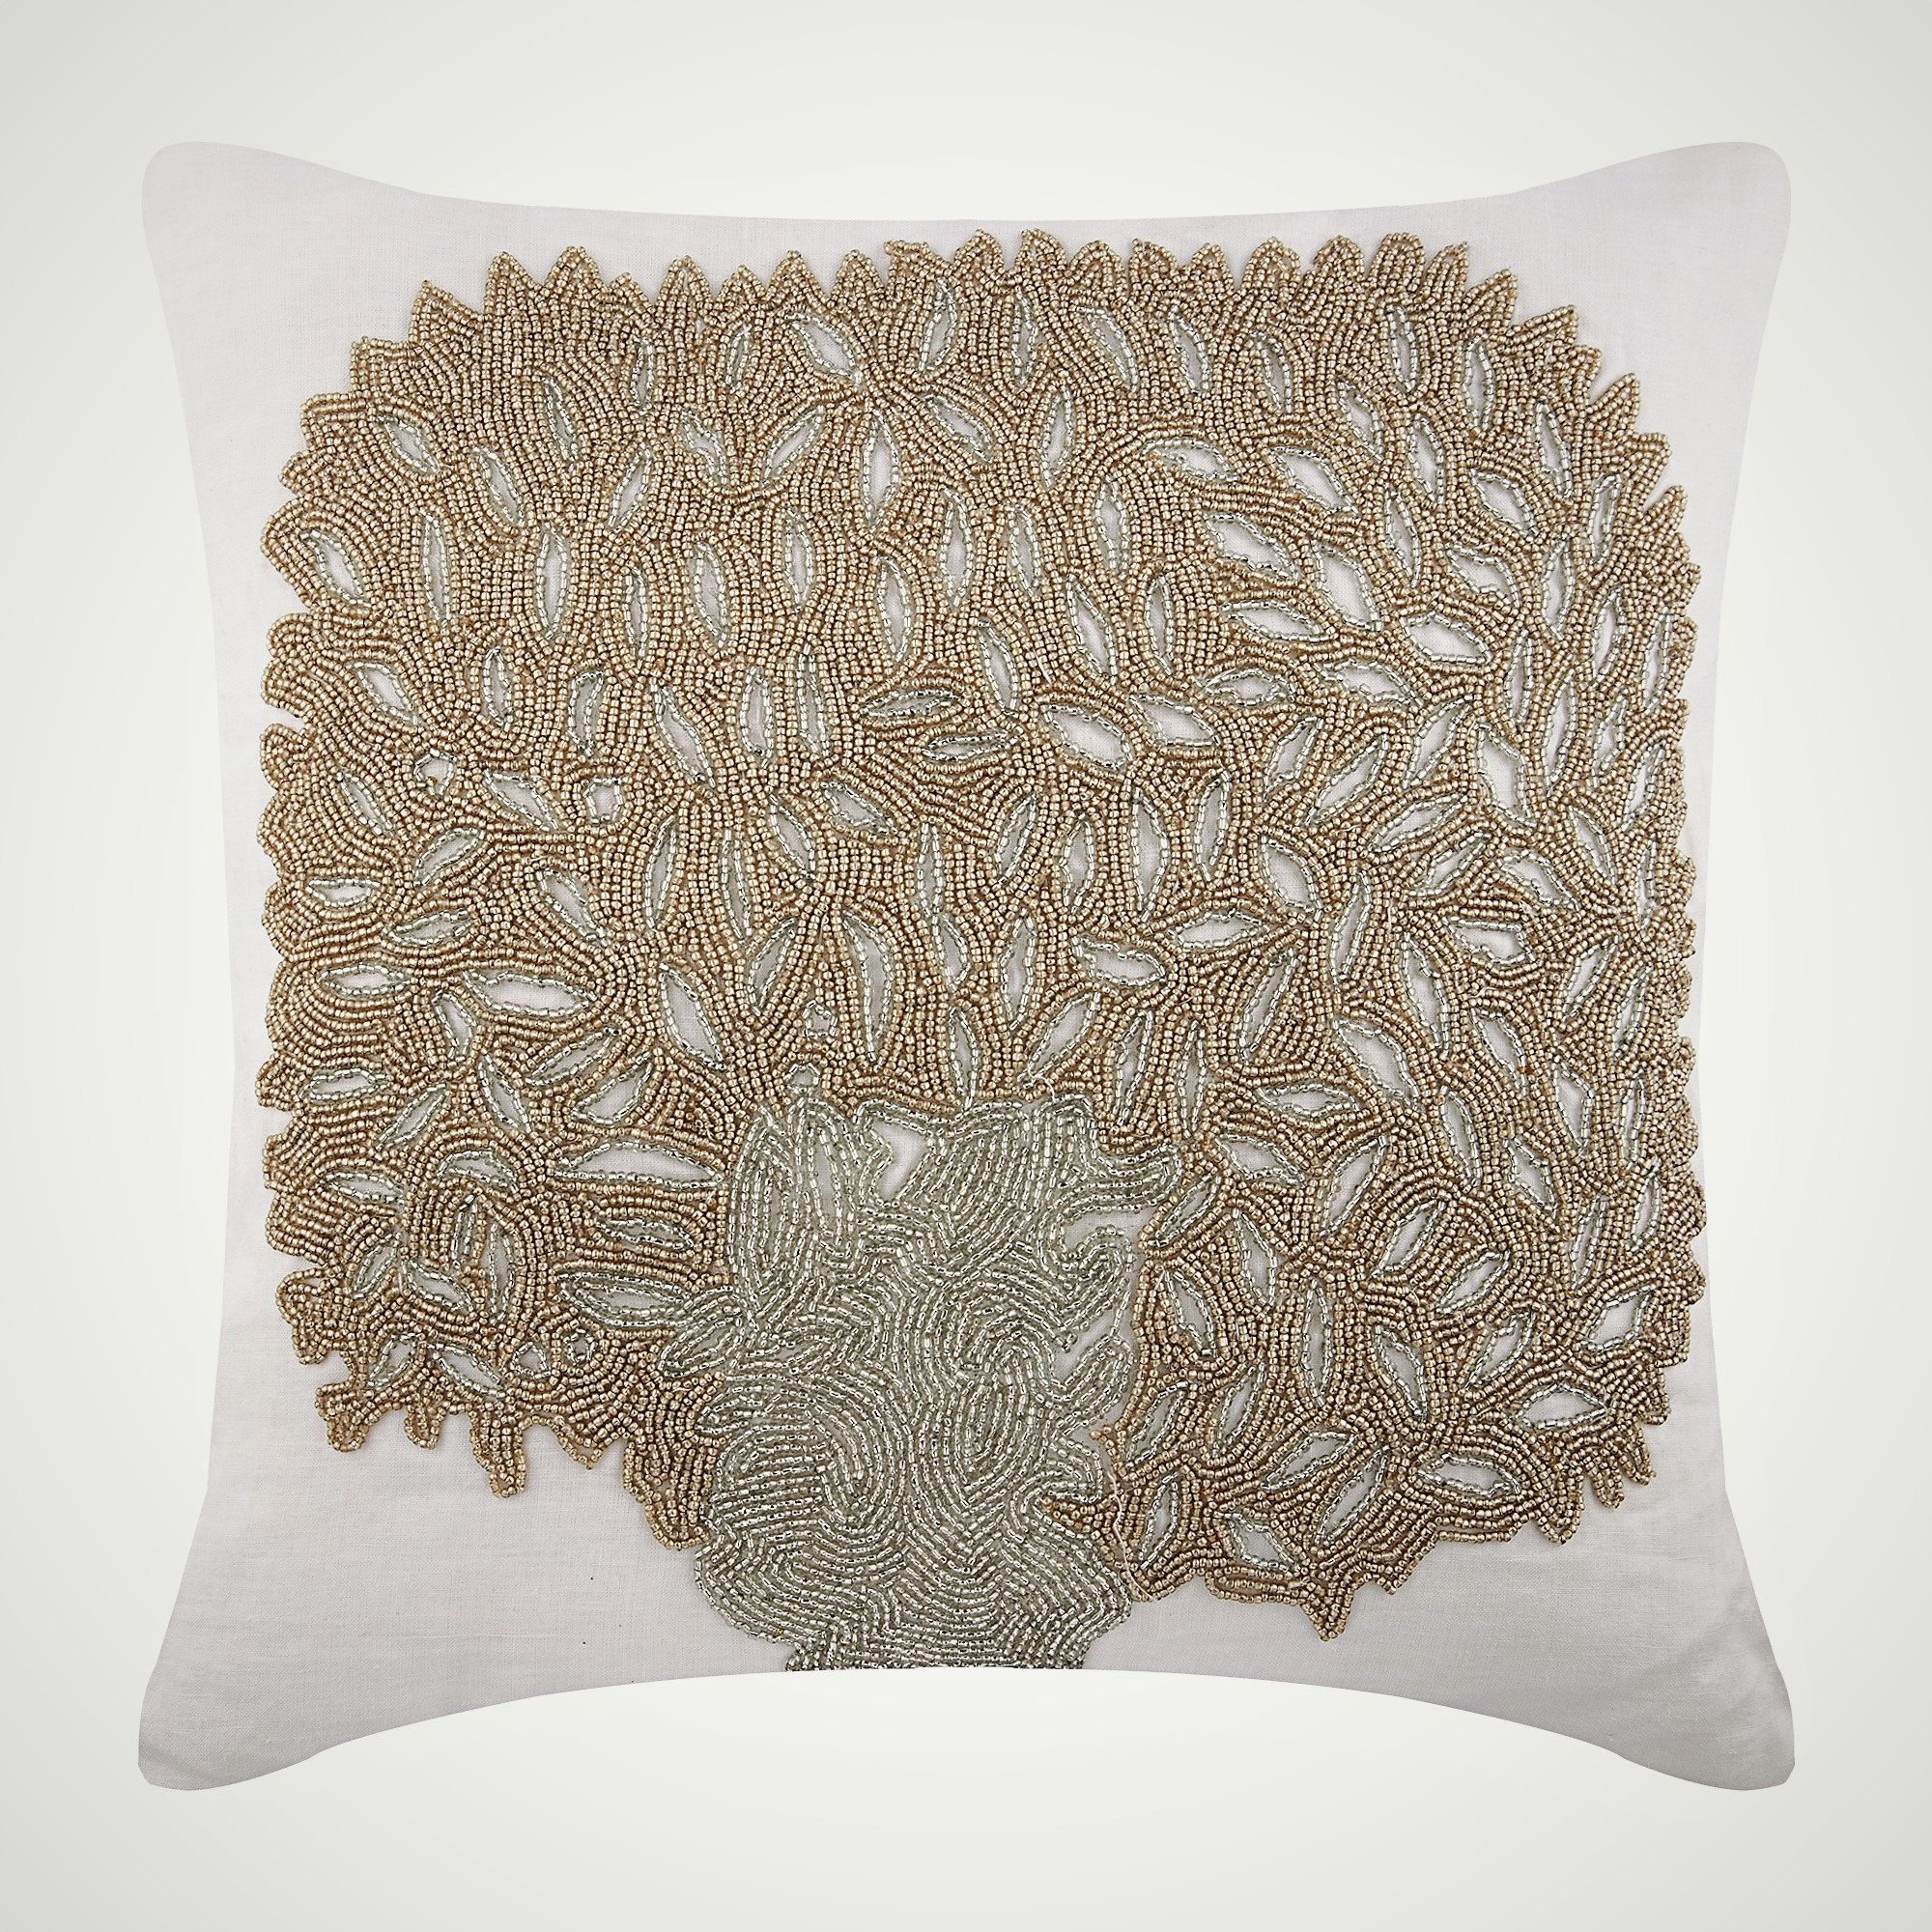 Designer Ivory Throw Pillow For Bed